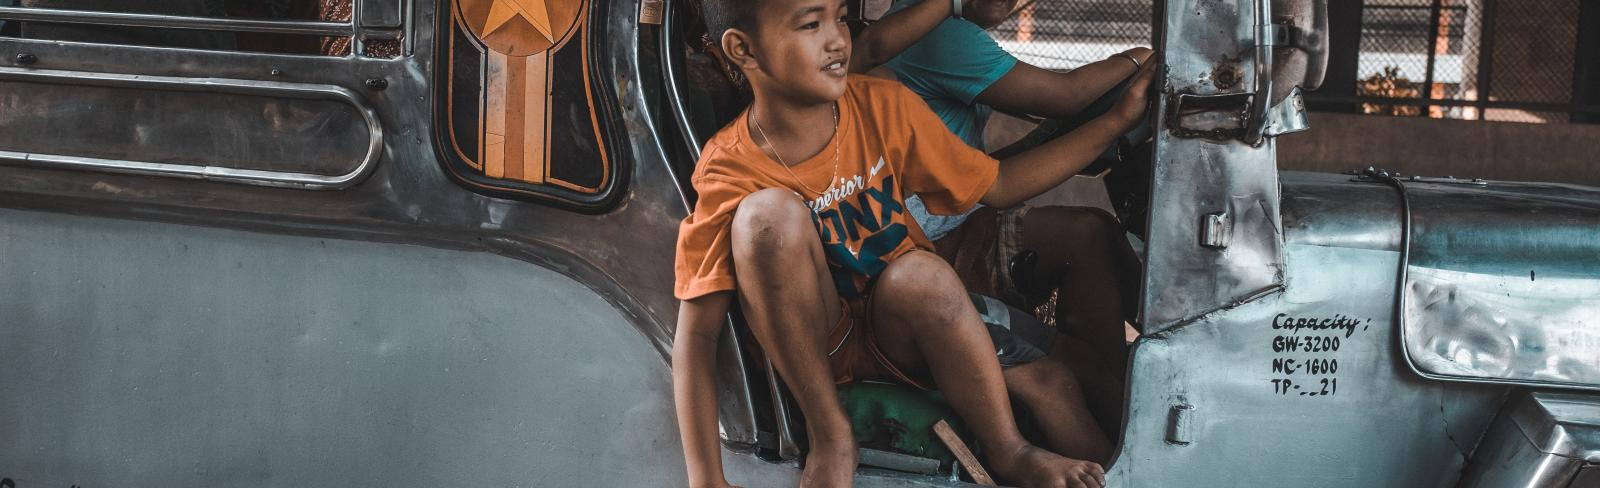 Filipino boy in Manila, Philippines. Photo by Bash Carlos